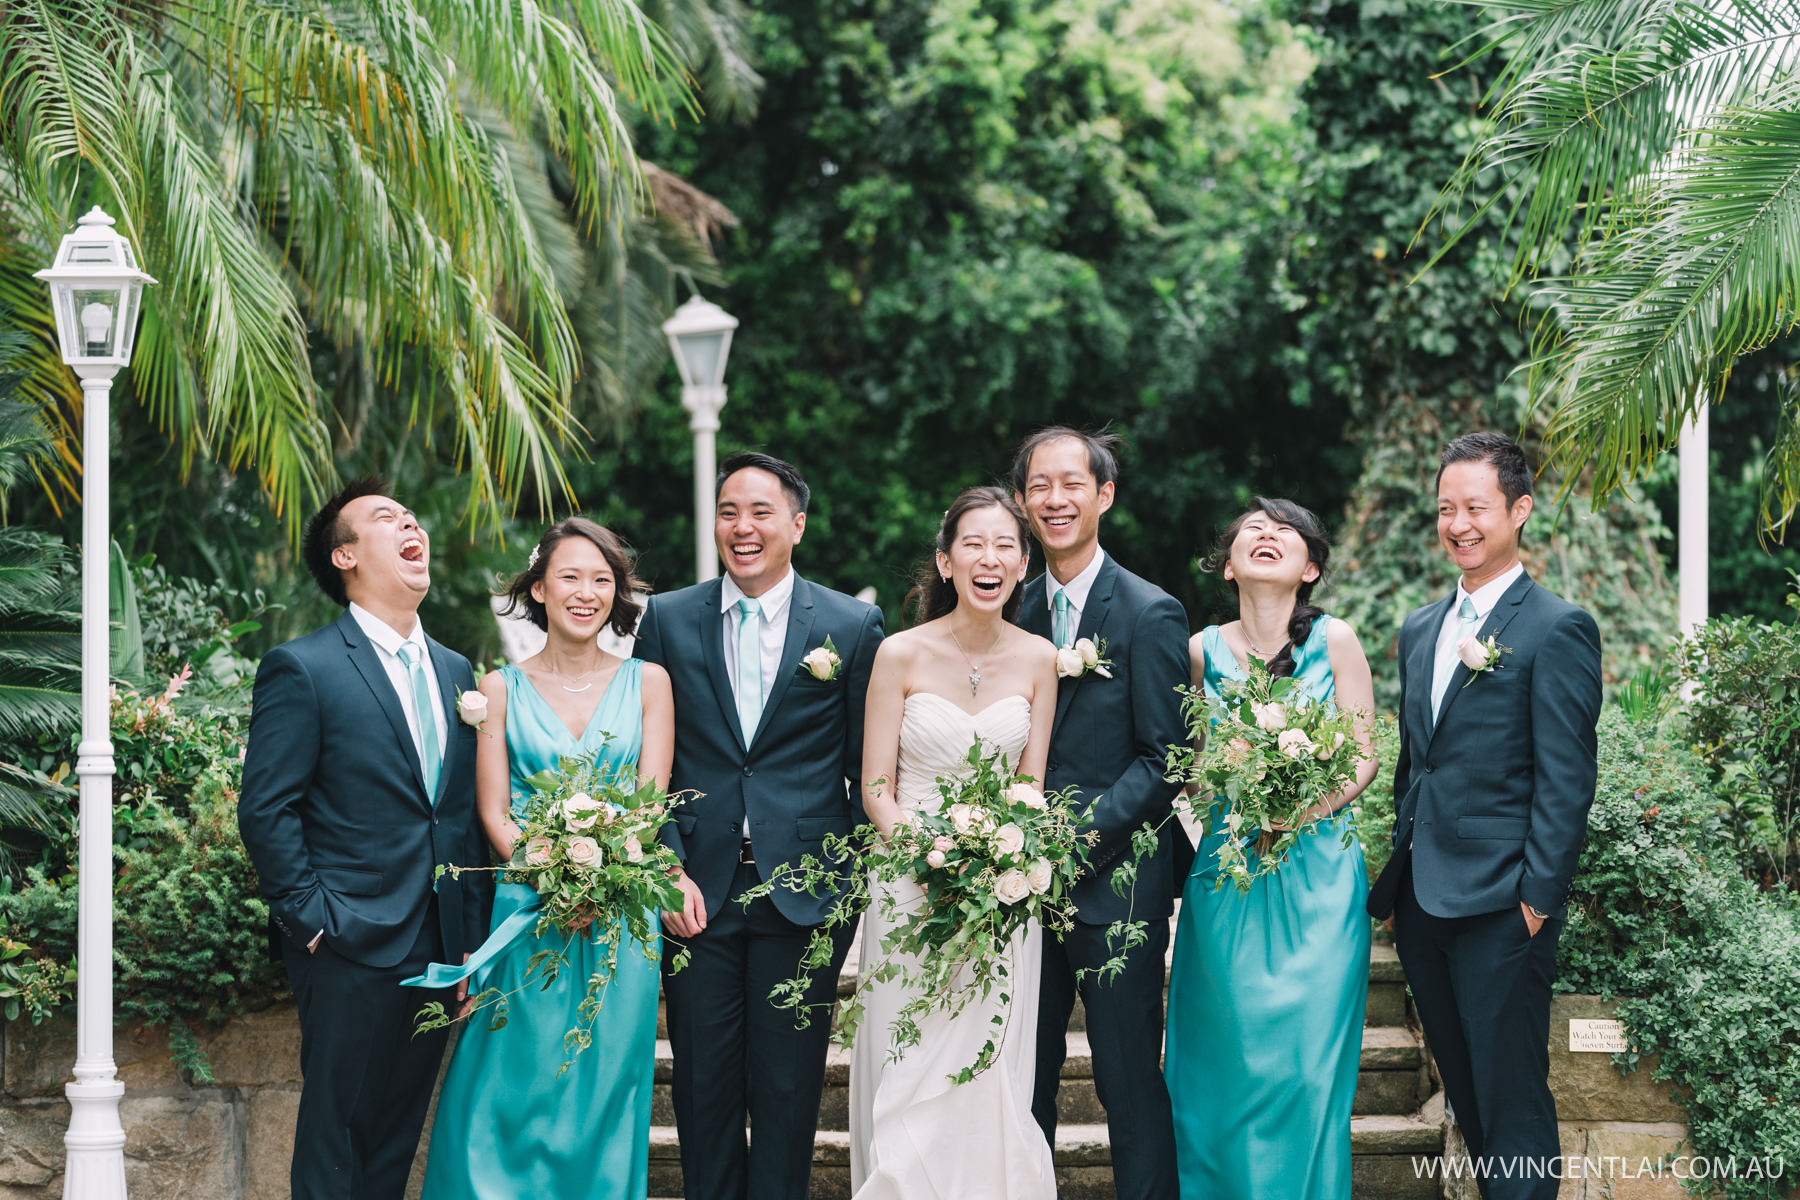 Garden Wedding Ceremony and Reception at Oatlands House